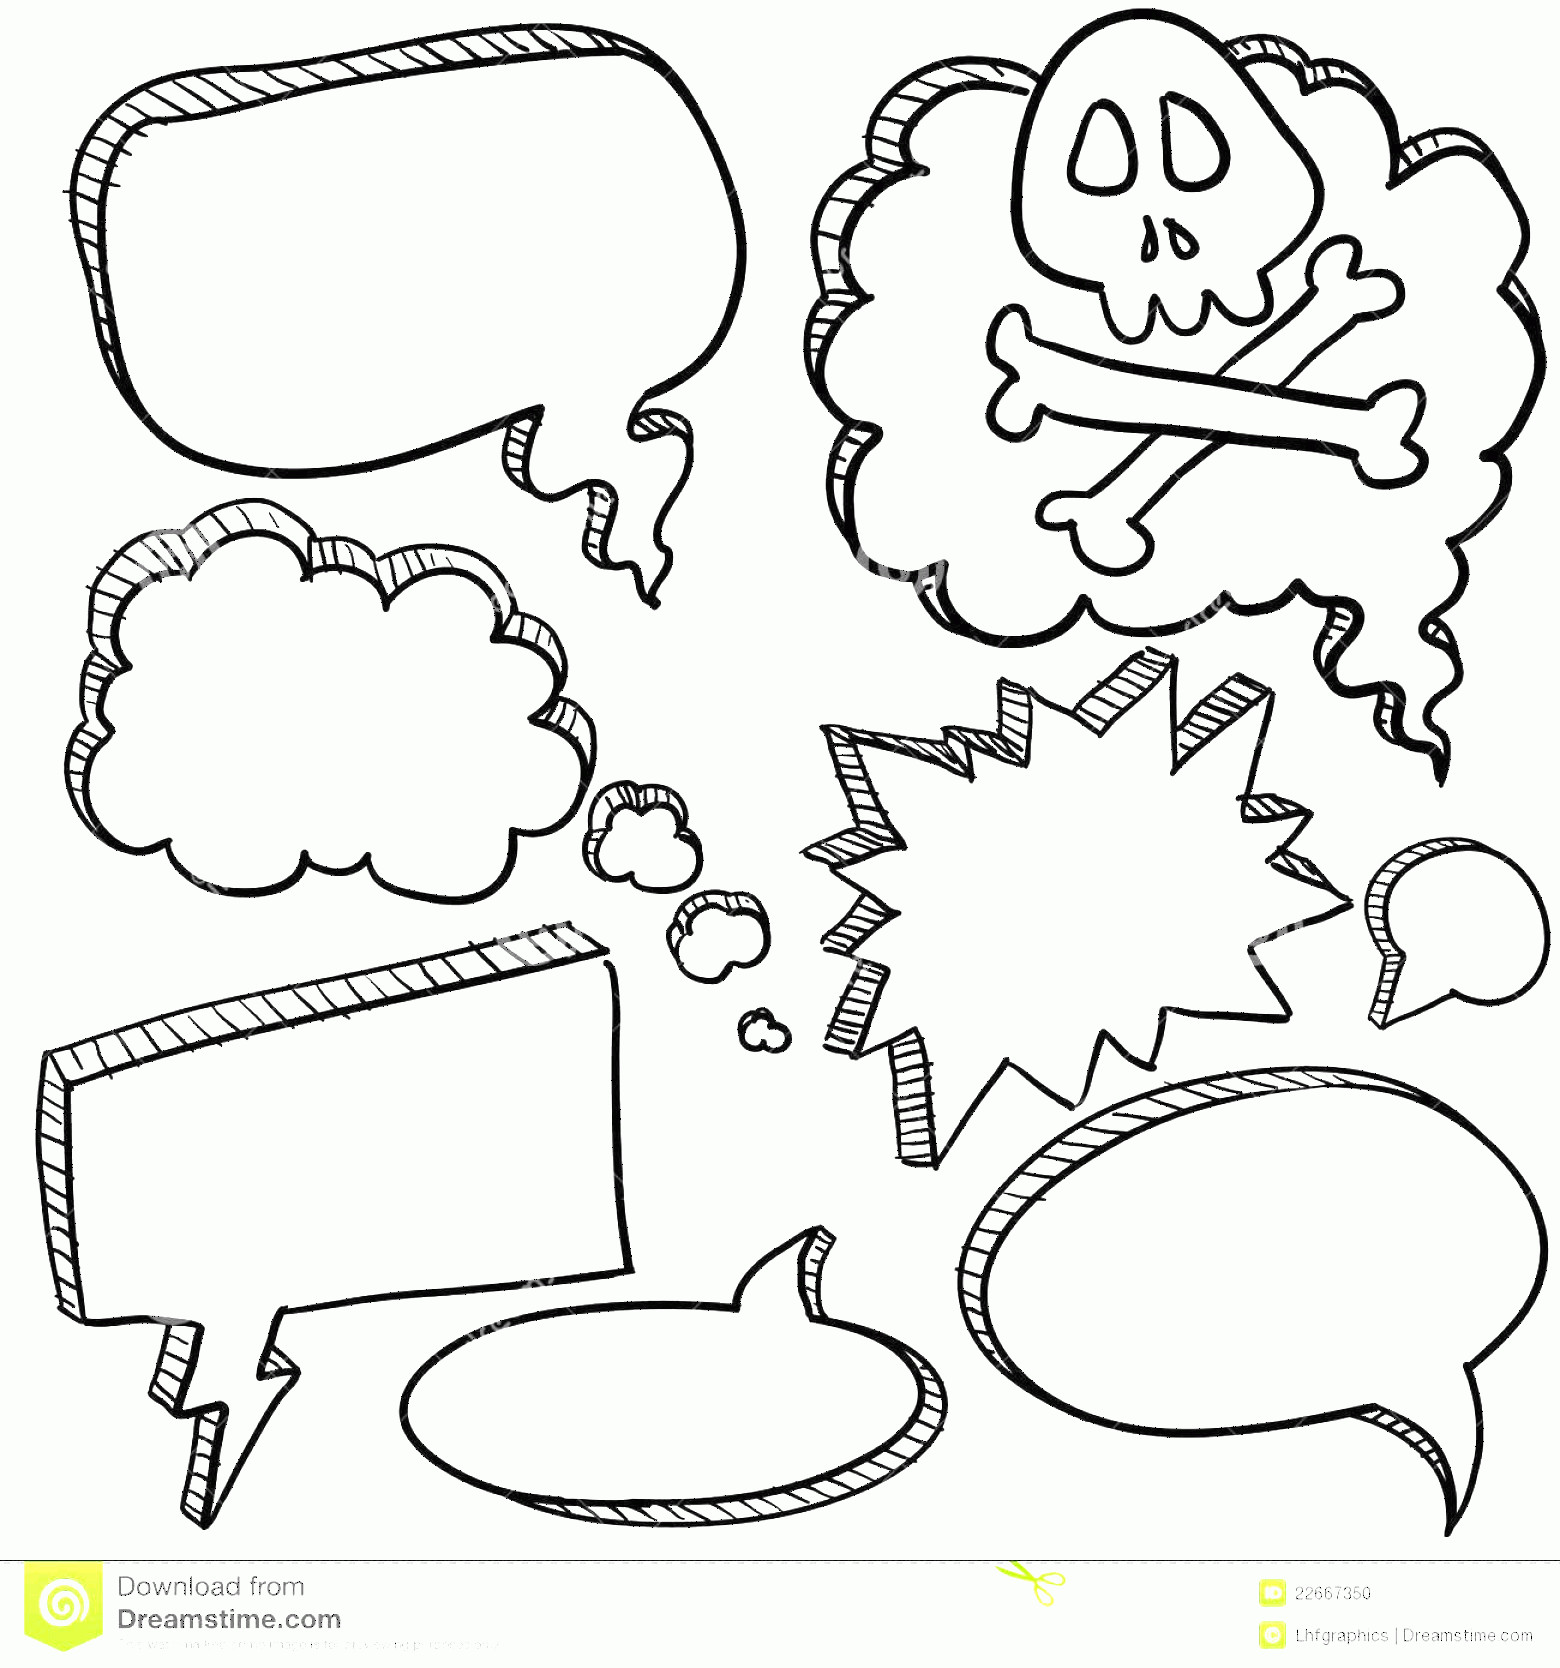 Thought Bubble Vector Sketch: Stock Photo Speech Bubble Sketch Image